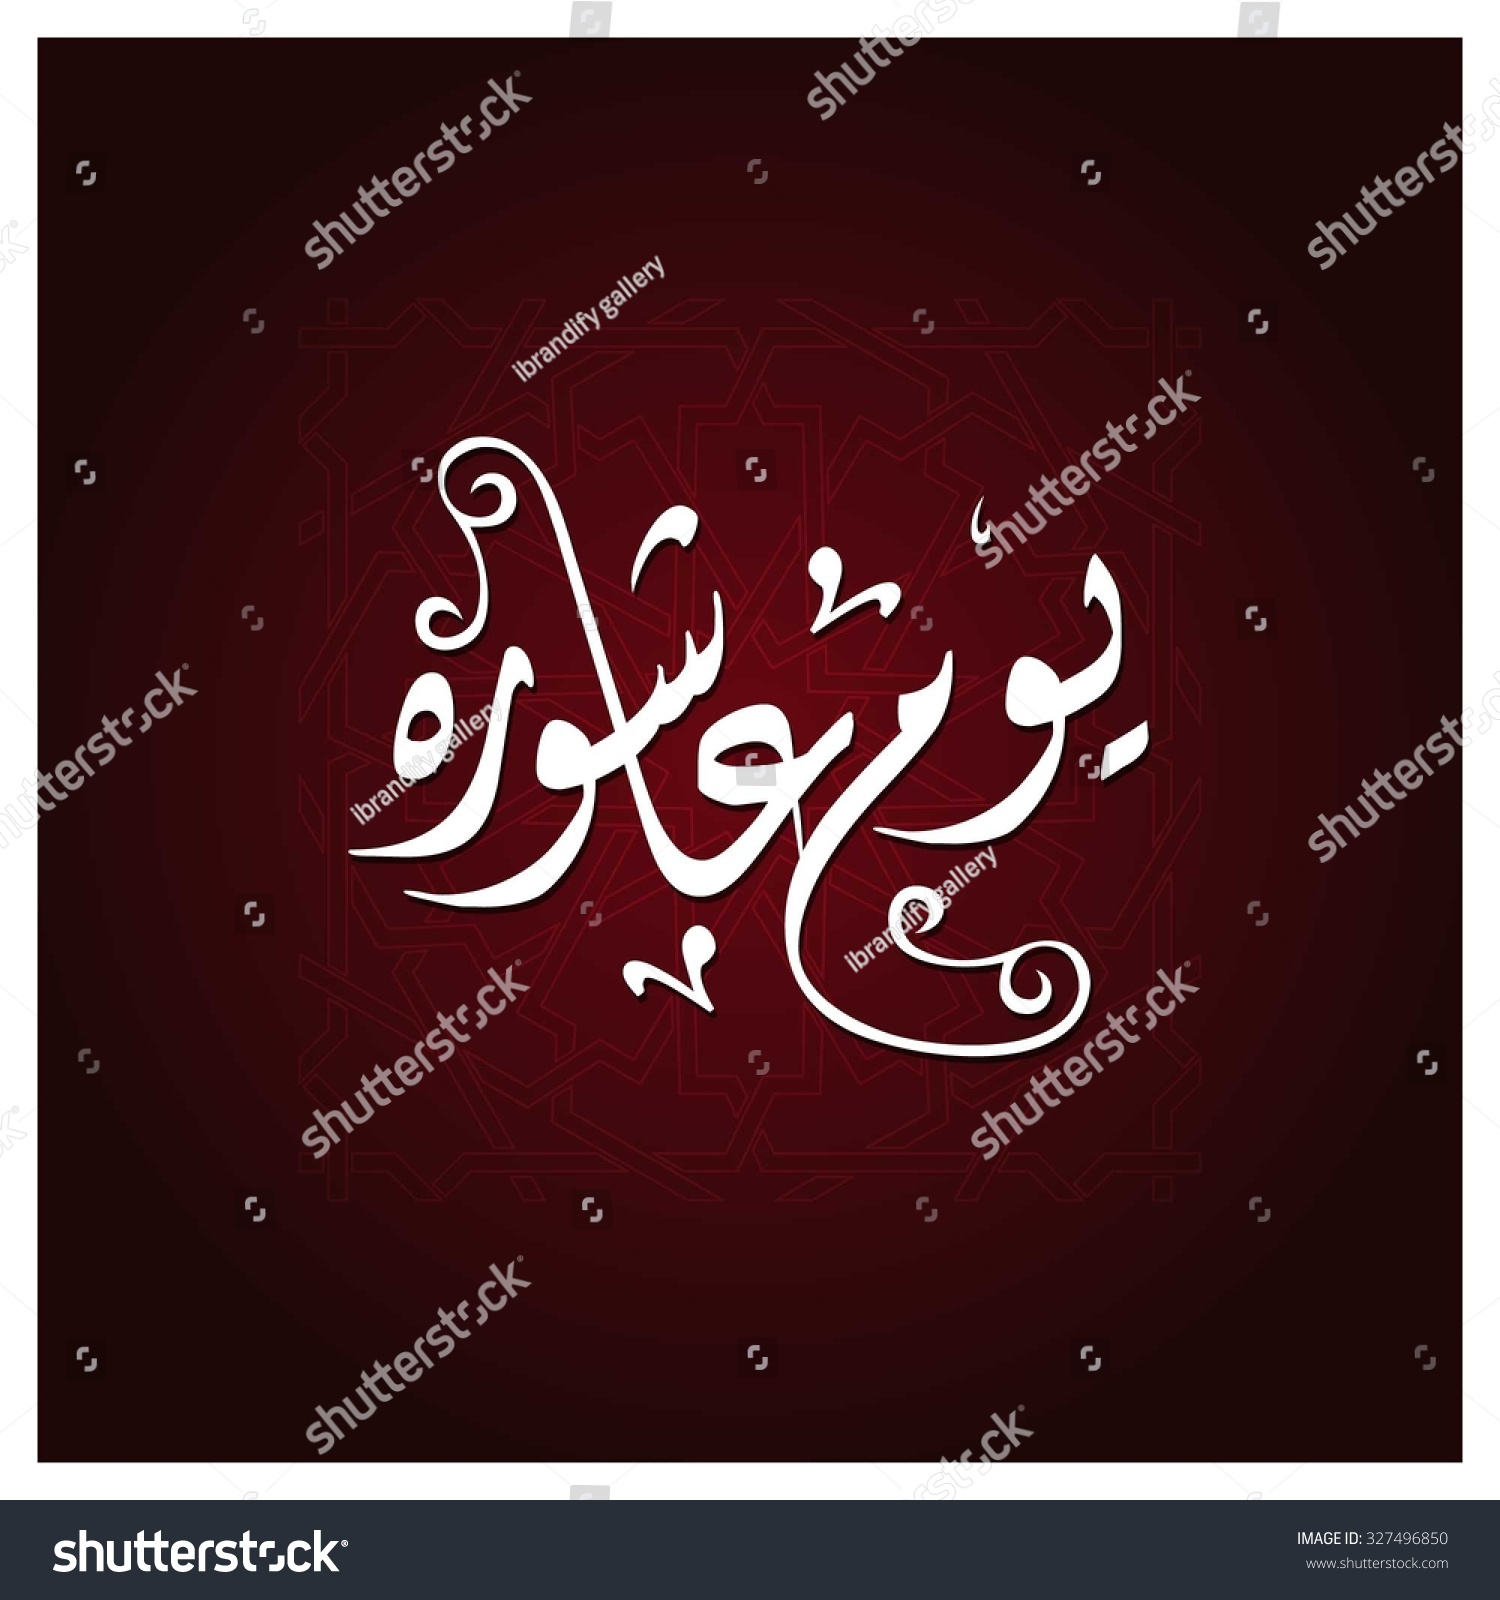 Urdu Calligraphy Font Free Download Royalty Free Urdu Calligraphy Day Of Ashura Floral 327496850